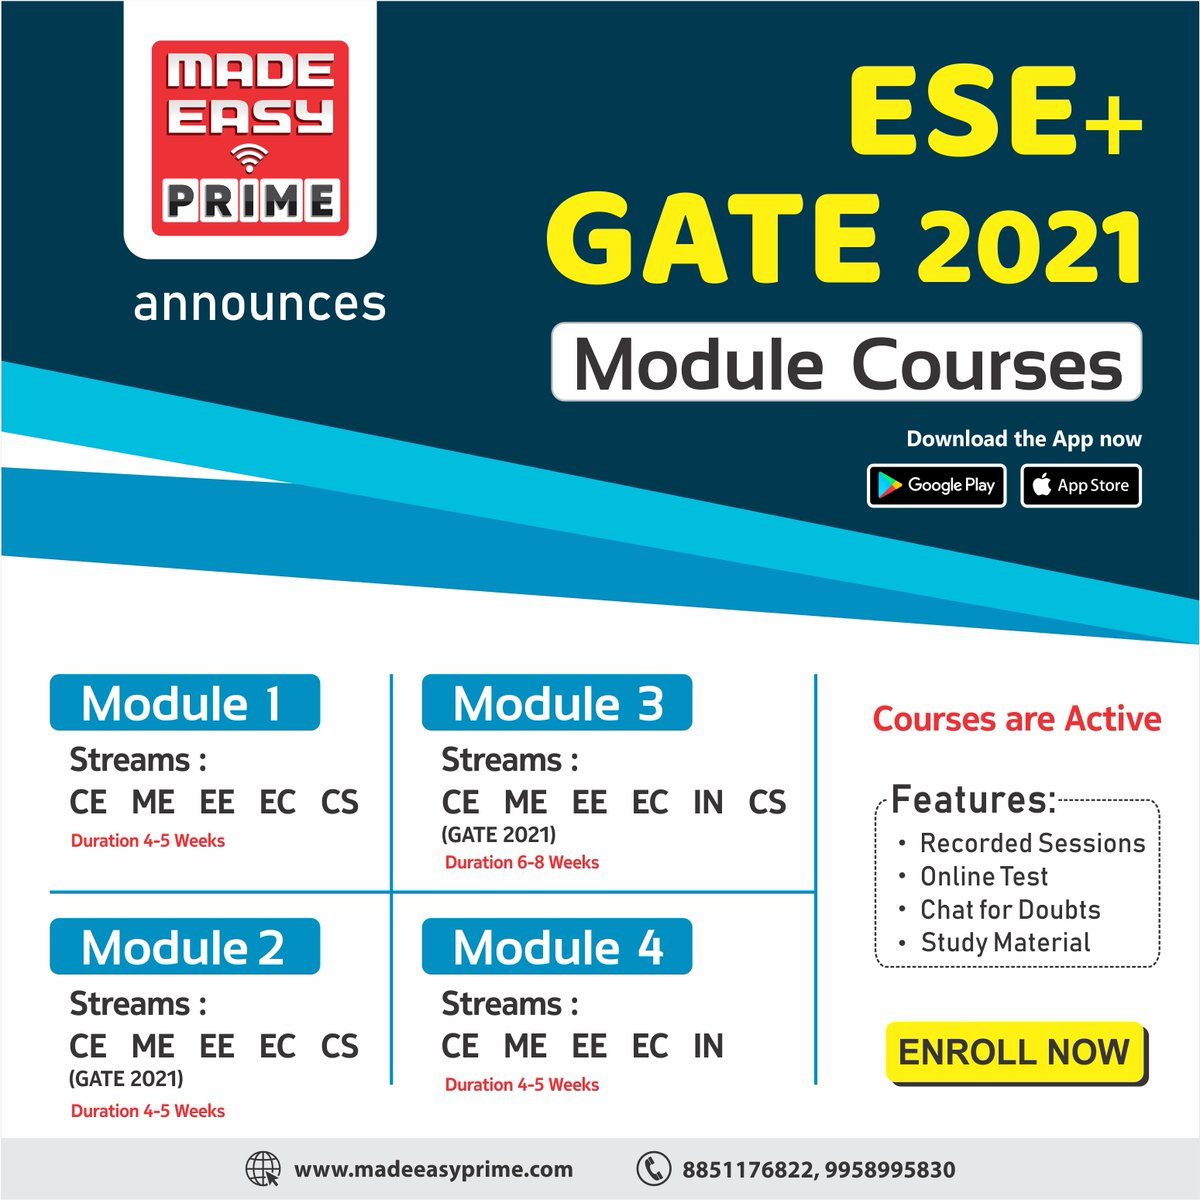 Module Course for ESE+GATE is a brand new initiative of MADE EASY PRIME where students can subscribe to Modules (a combination of 2-3 Technical subjects) for each Branch. To know more please visit: https://t.co/J3uCWoj0cZ  #GATE2021 #ESE2021 #IES #OnlineClasses #MADEEASYPrime https://t.co/KSlj7dzGDr